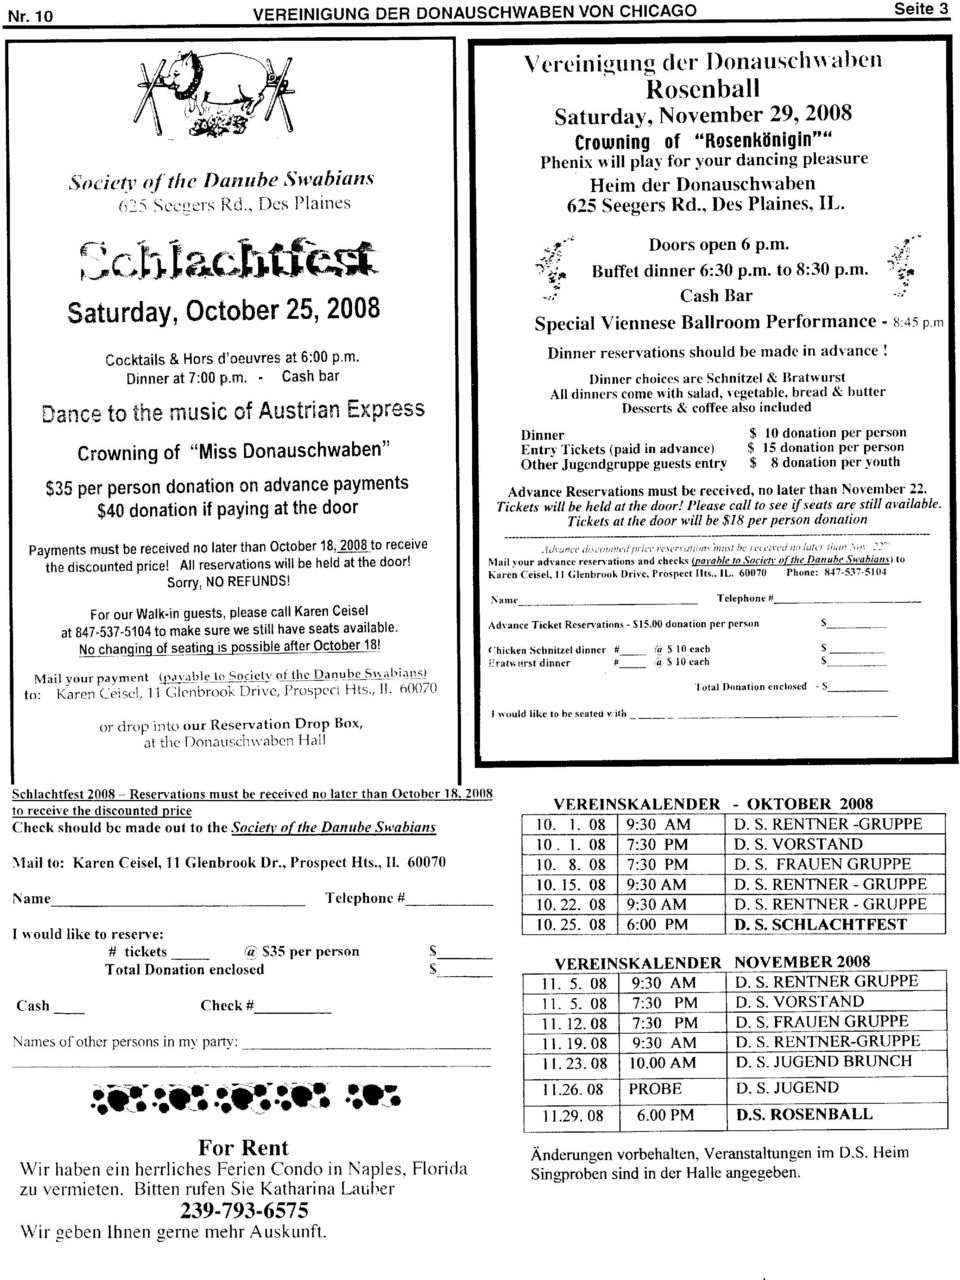 "$35 pel"" person donation advance payments $40 donation if Paying at the door Payments must be received no later than october 18, 2008 to receive ih. di*.ornted price!"